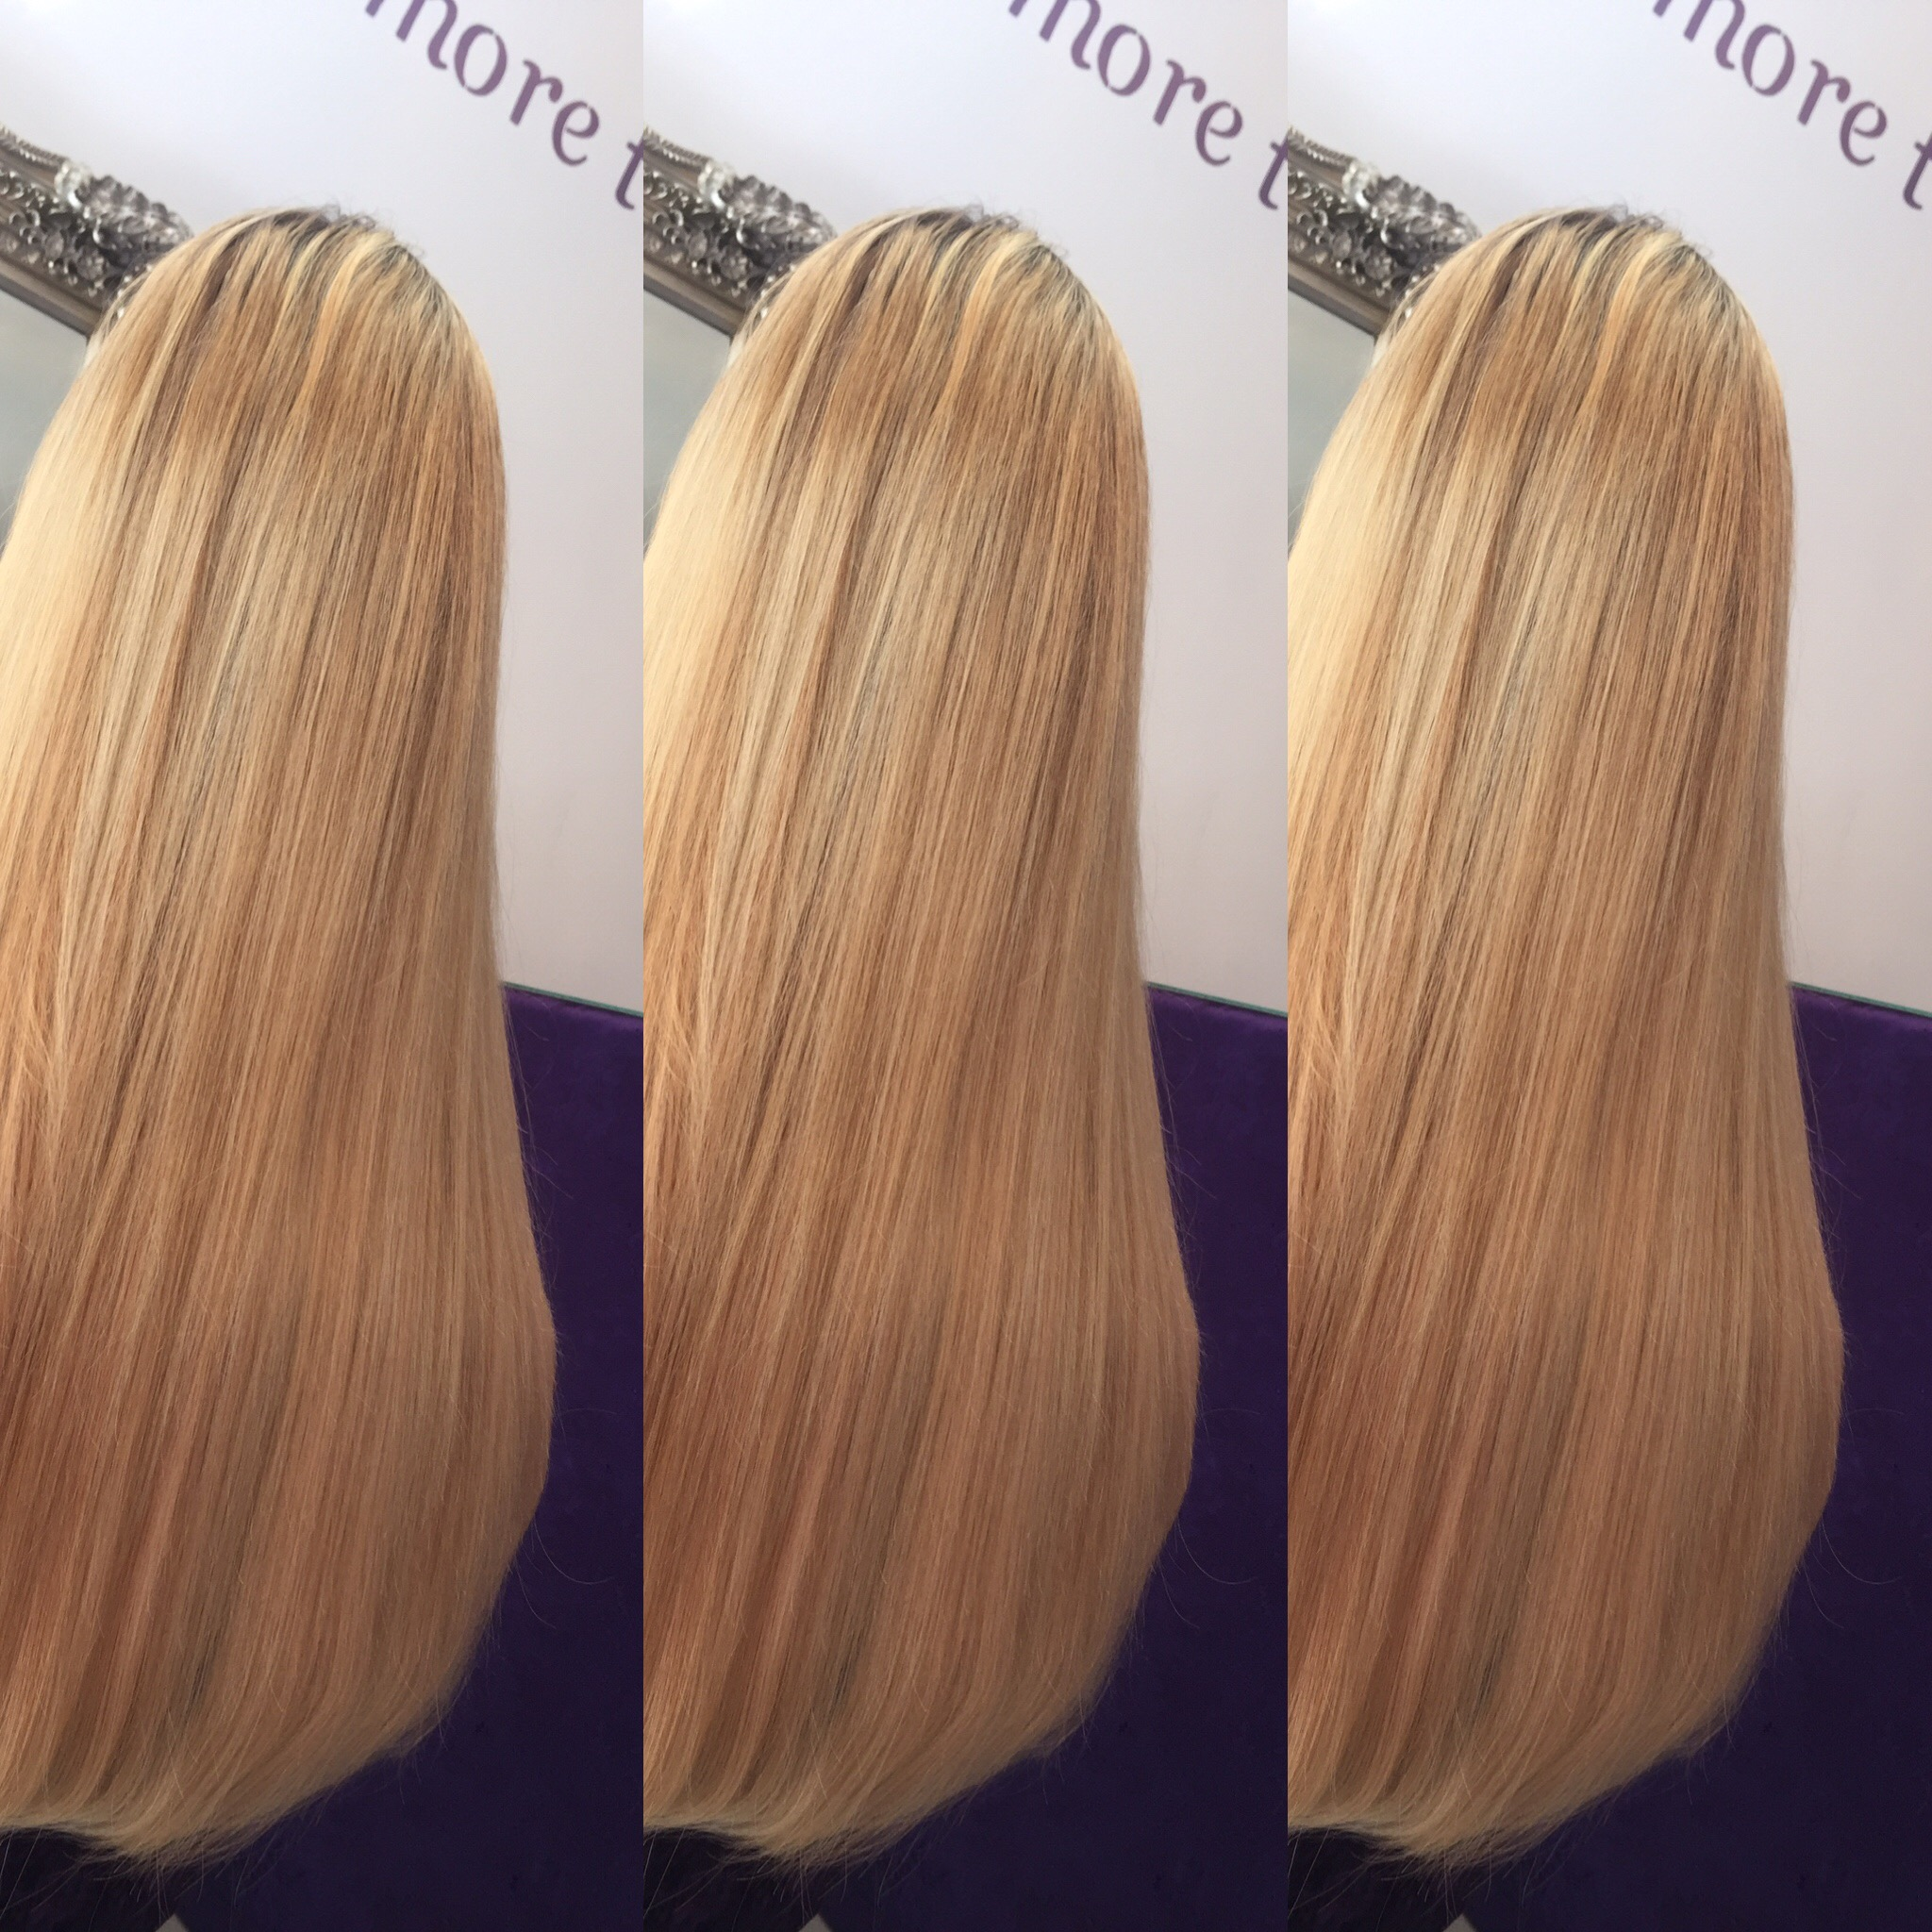 Blonde Transformations Tantrum Hair Extensions